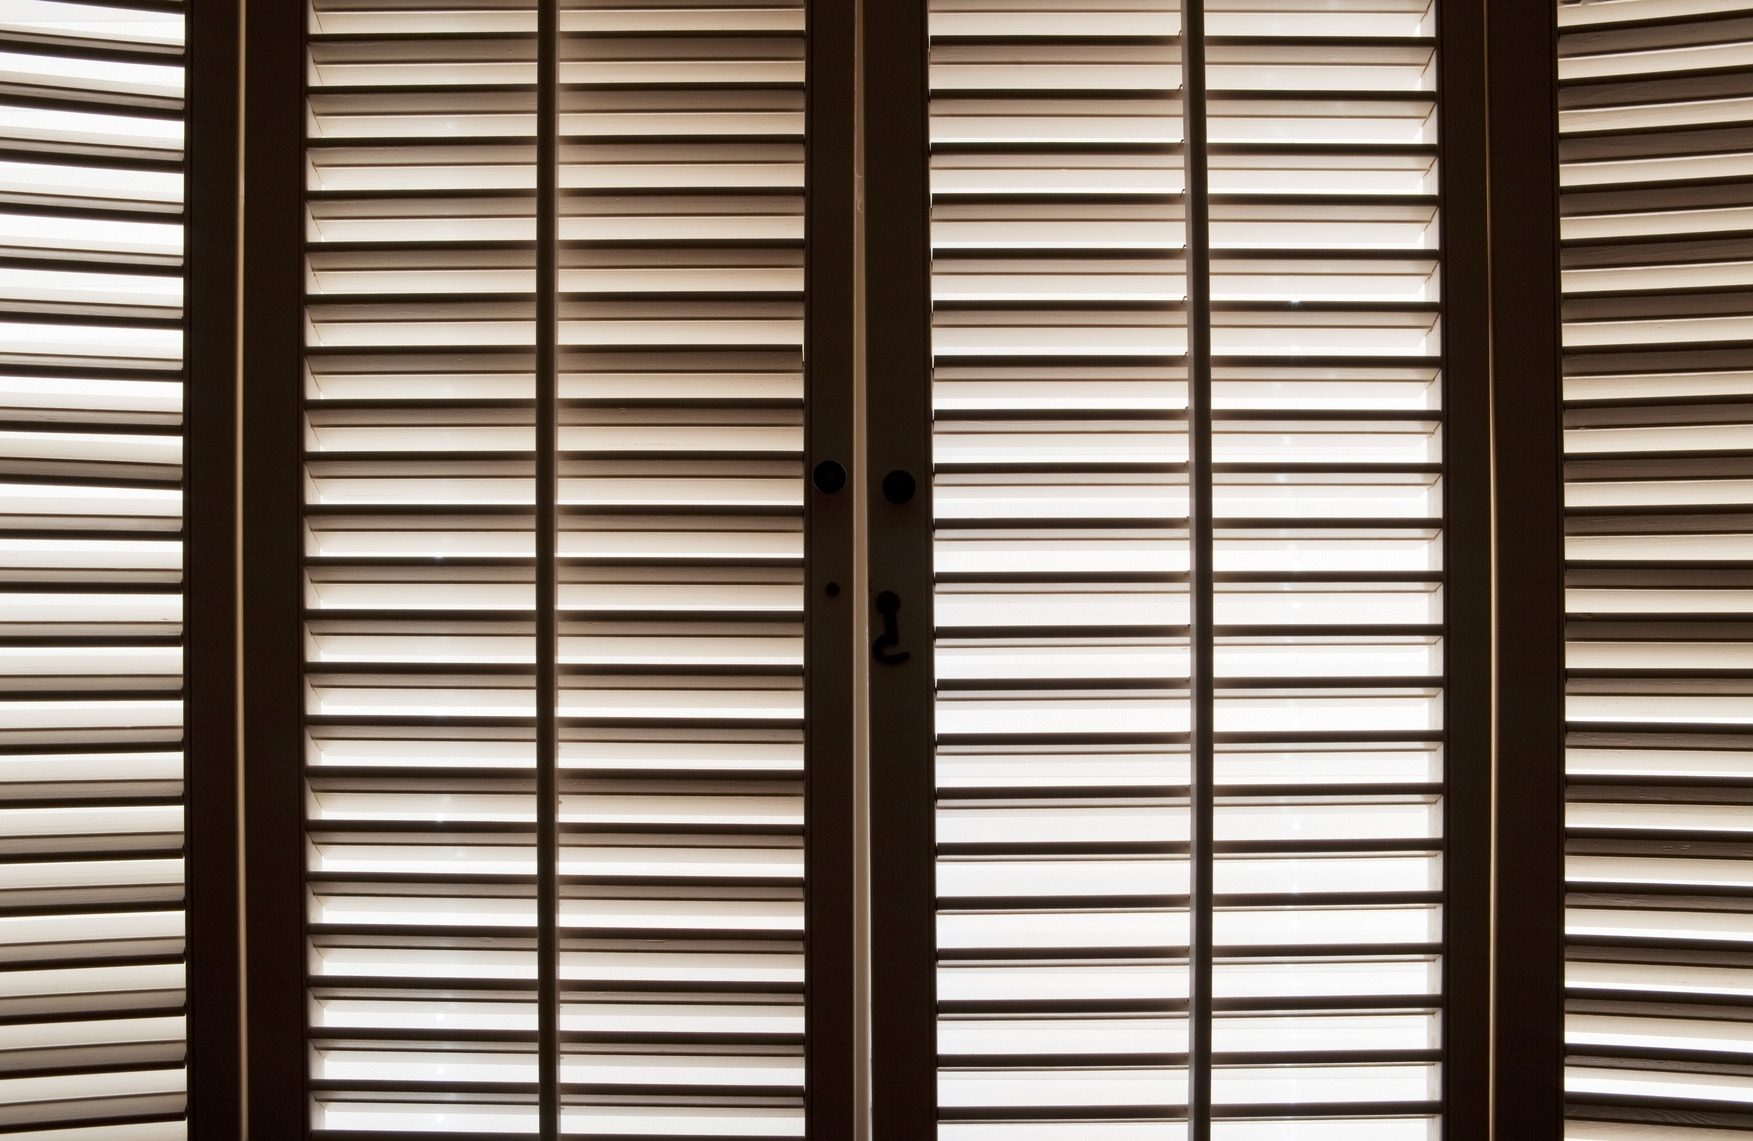 photodune-1479091-wooden-window-shutters-m